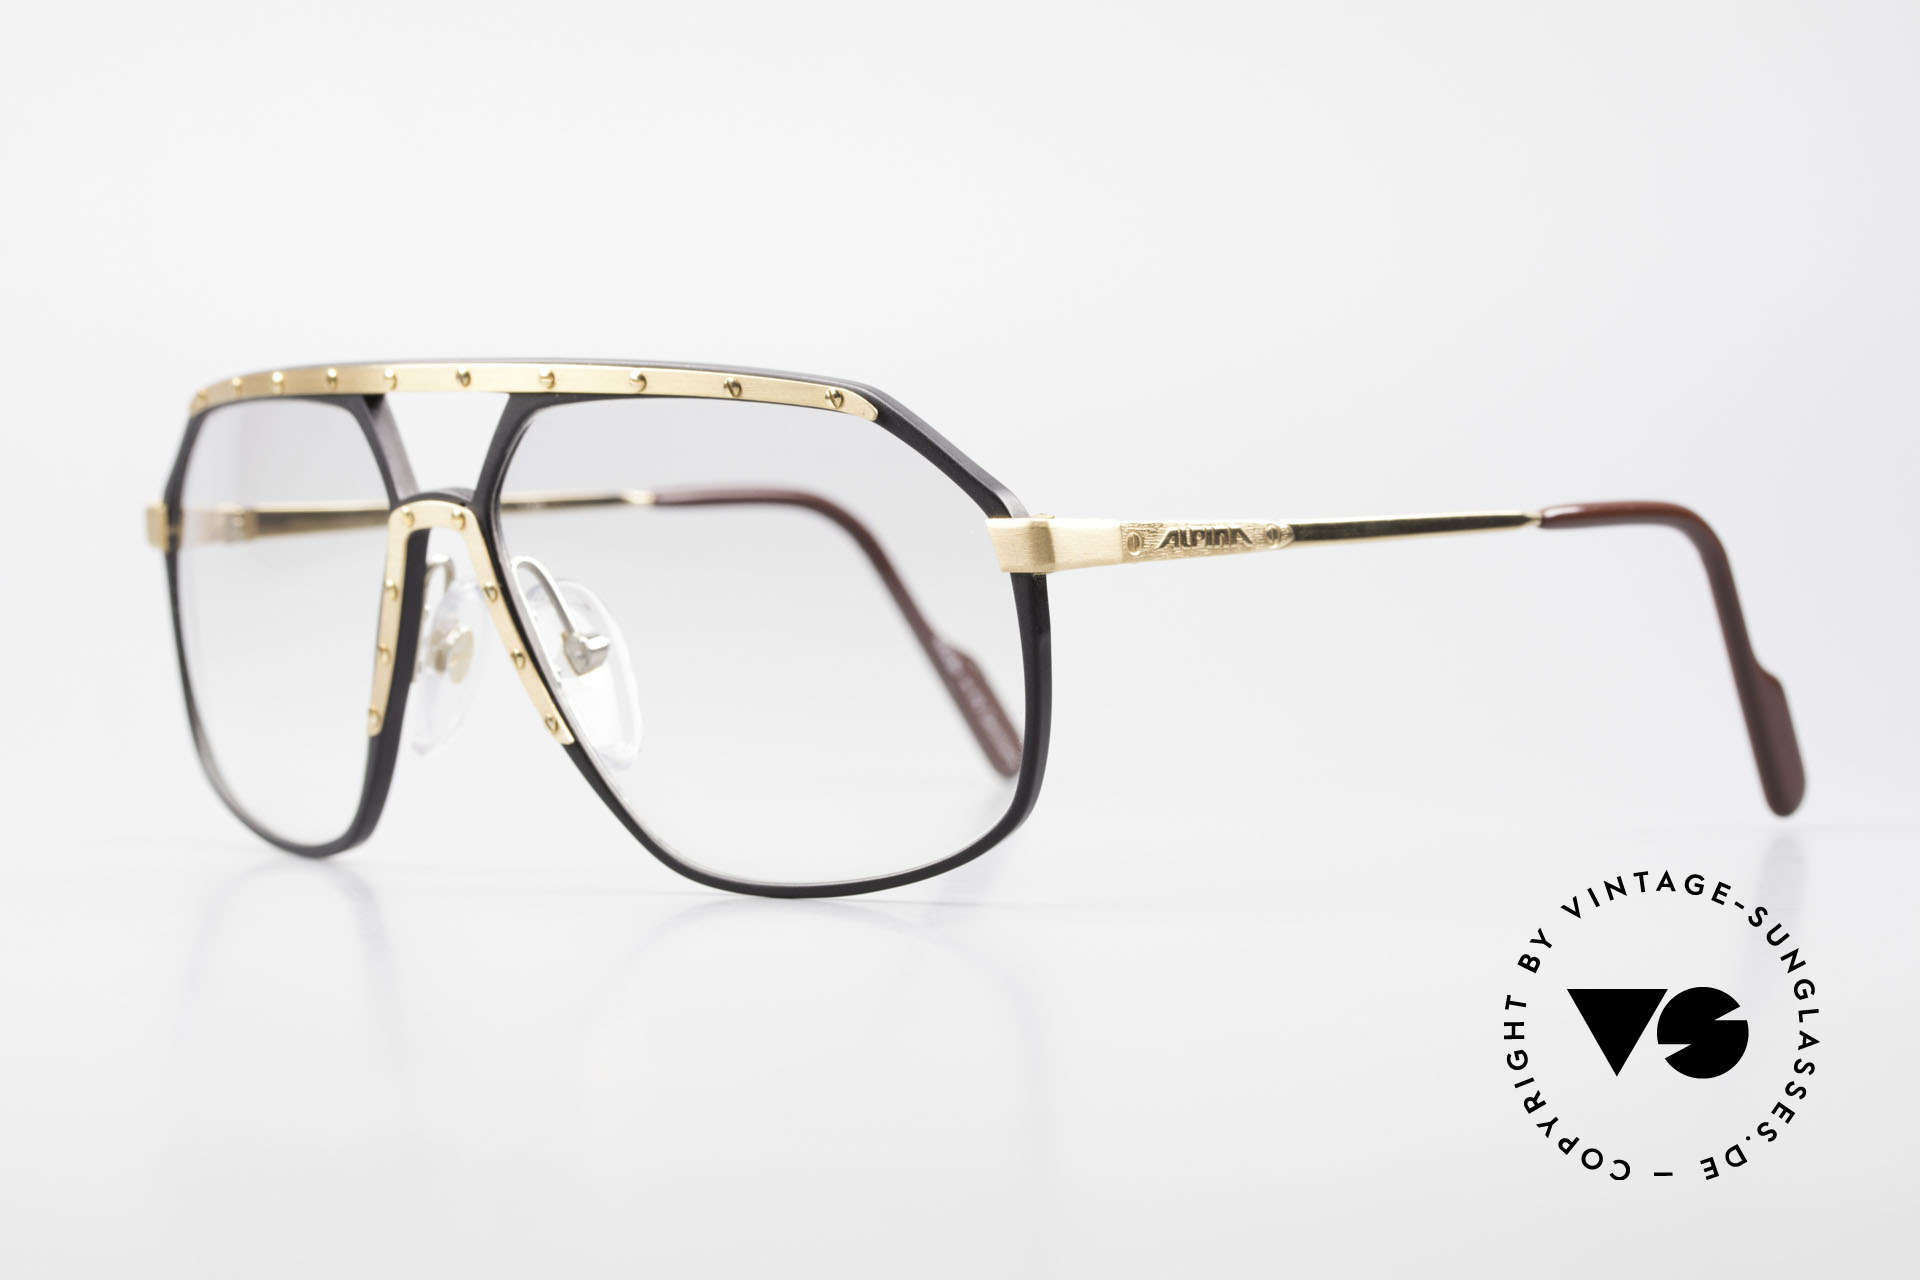 Alpina M6 80's Glasses Light Tinted Lens, famous for the 'W.Germany' frame and the screws, Made for Men